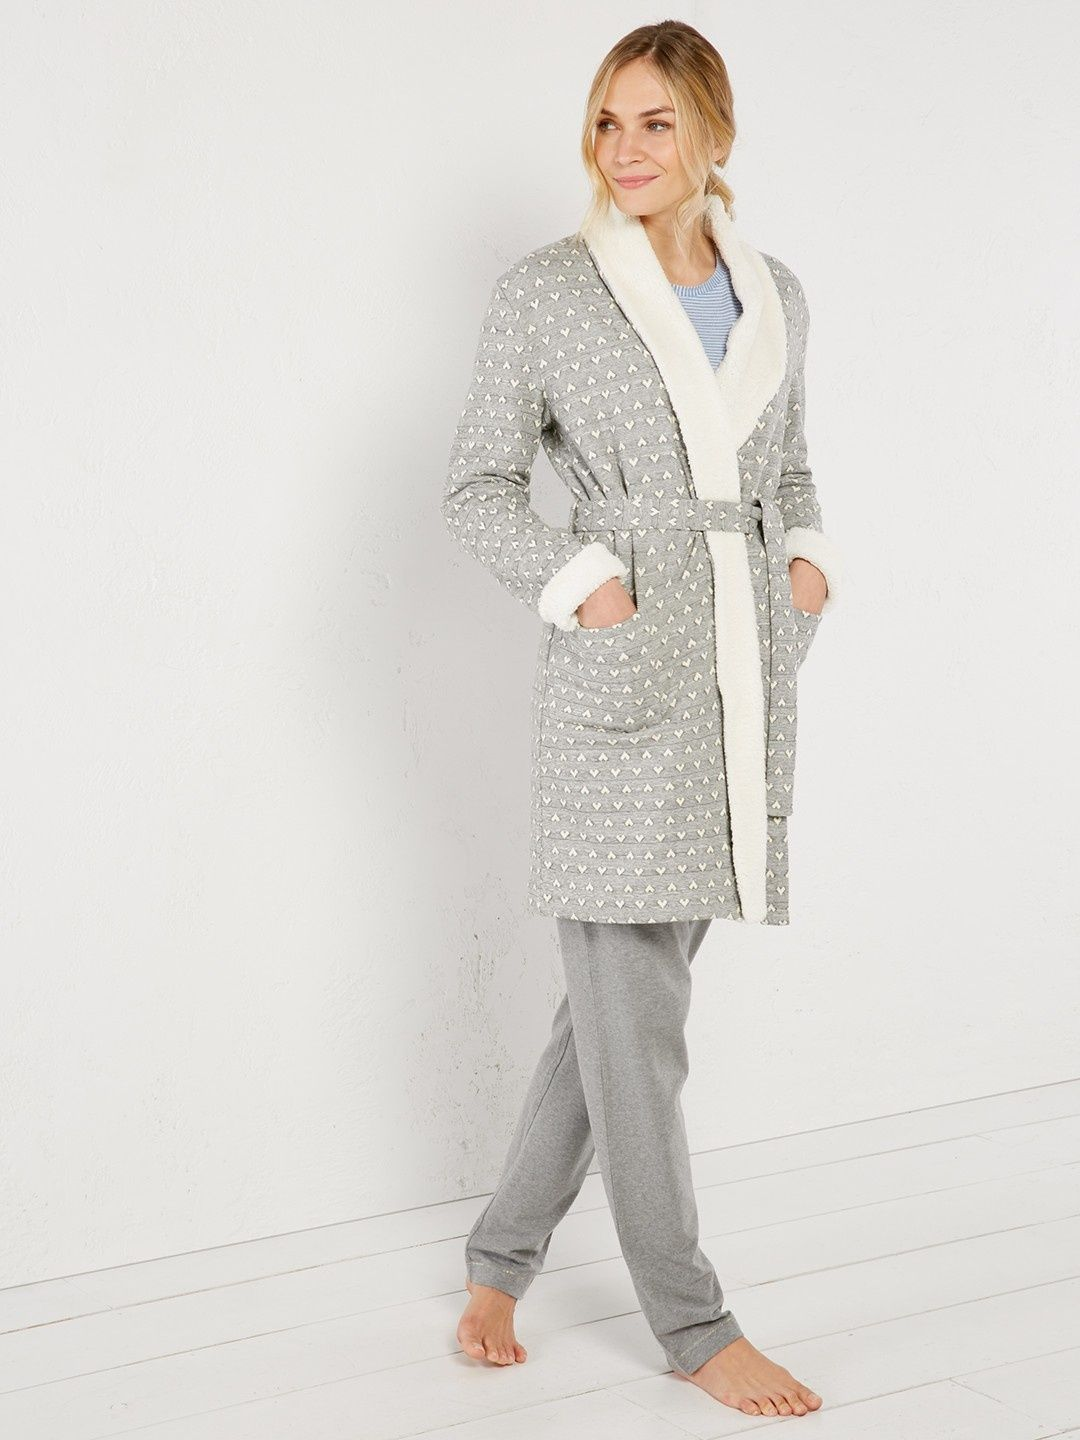 Winter nights heart robe | nightwear | White Stuff | My White Stuff ...